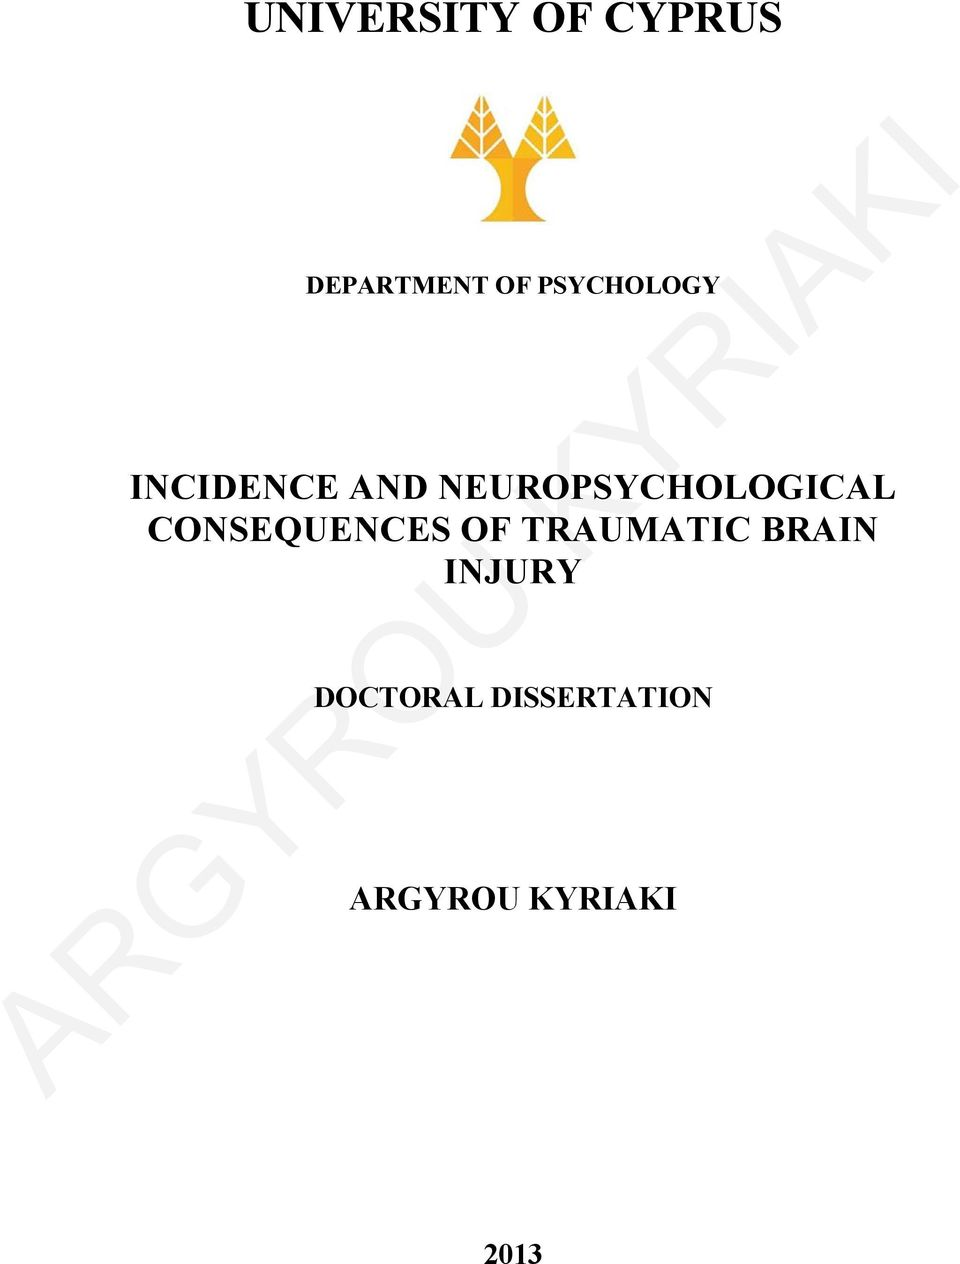 NEUROPSYCHOLOGICAL CONSEQUENCES OF